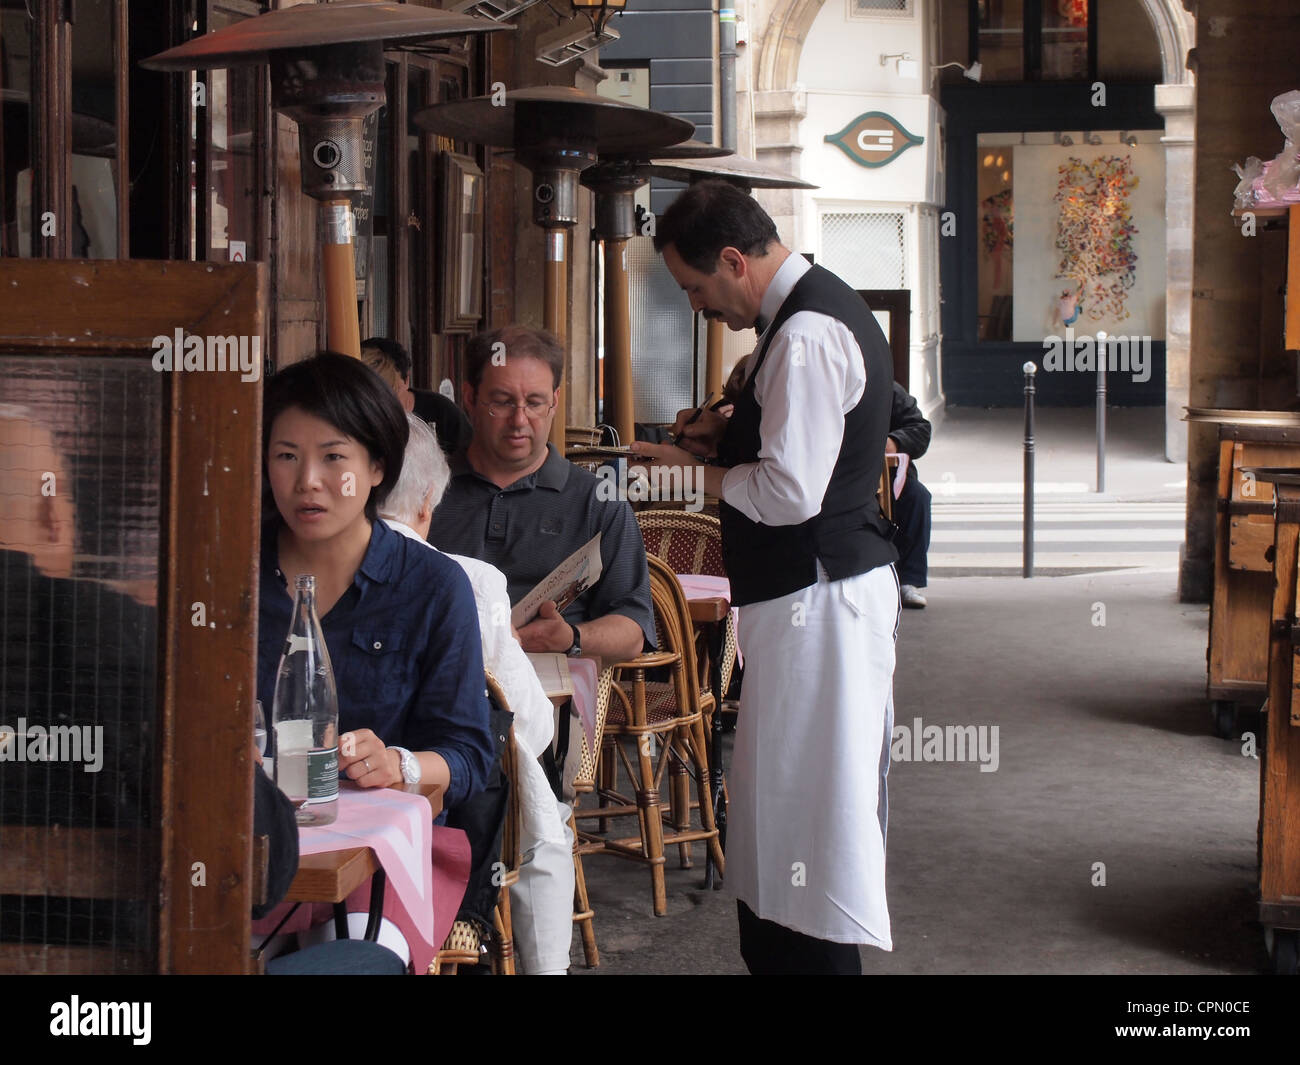 French waiter takes order from customer at a restaurant in Paris, France, May 9, 2012, © Katharine Andriotis - Stock Image